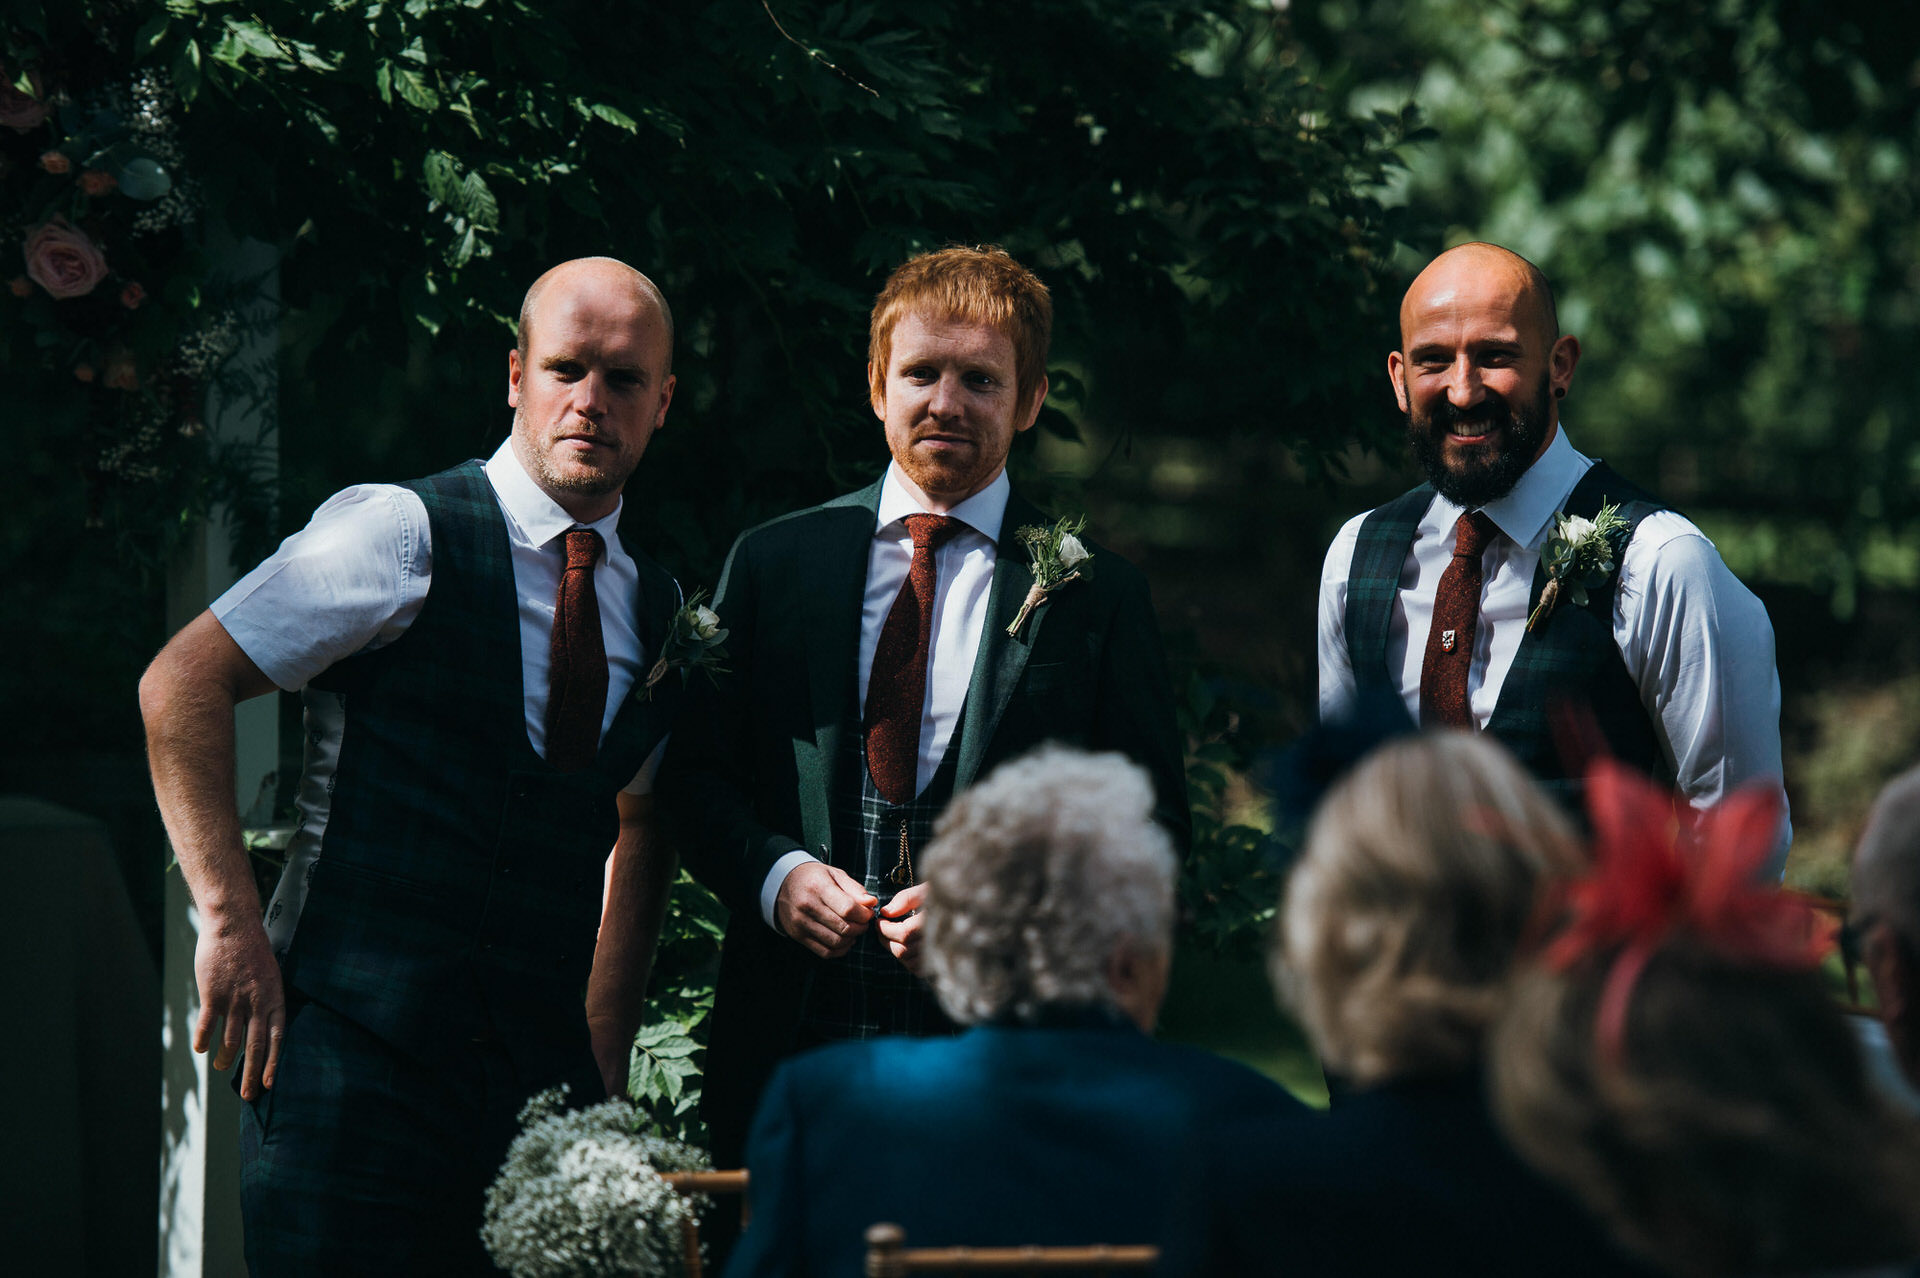 Maunsel house wedding photography 18 outdoor ceremony